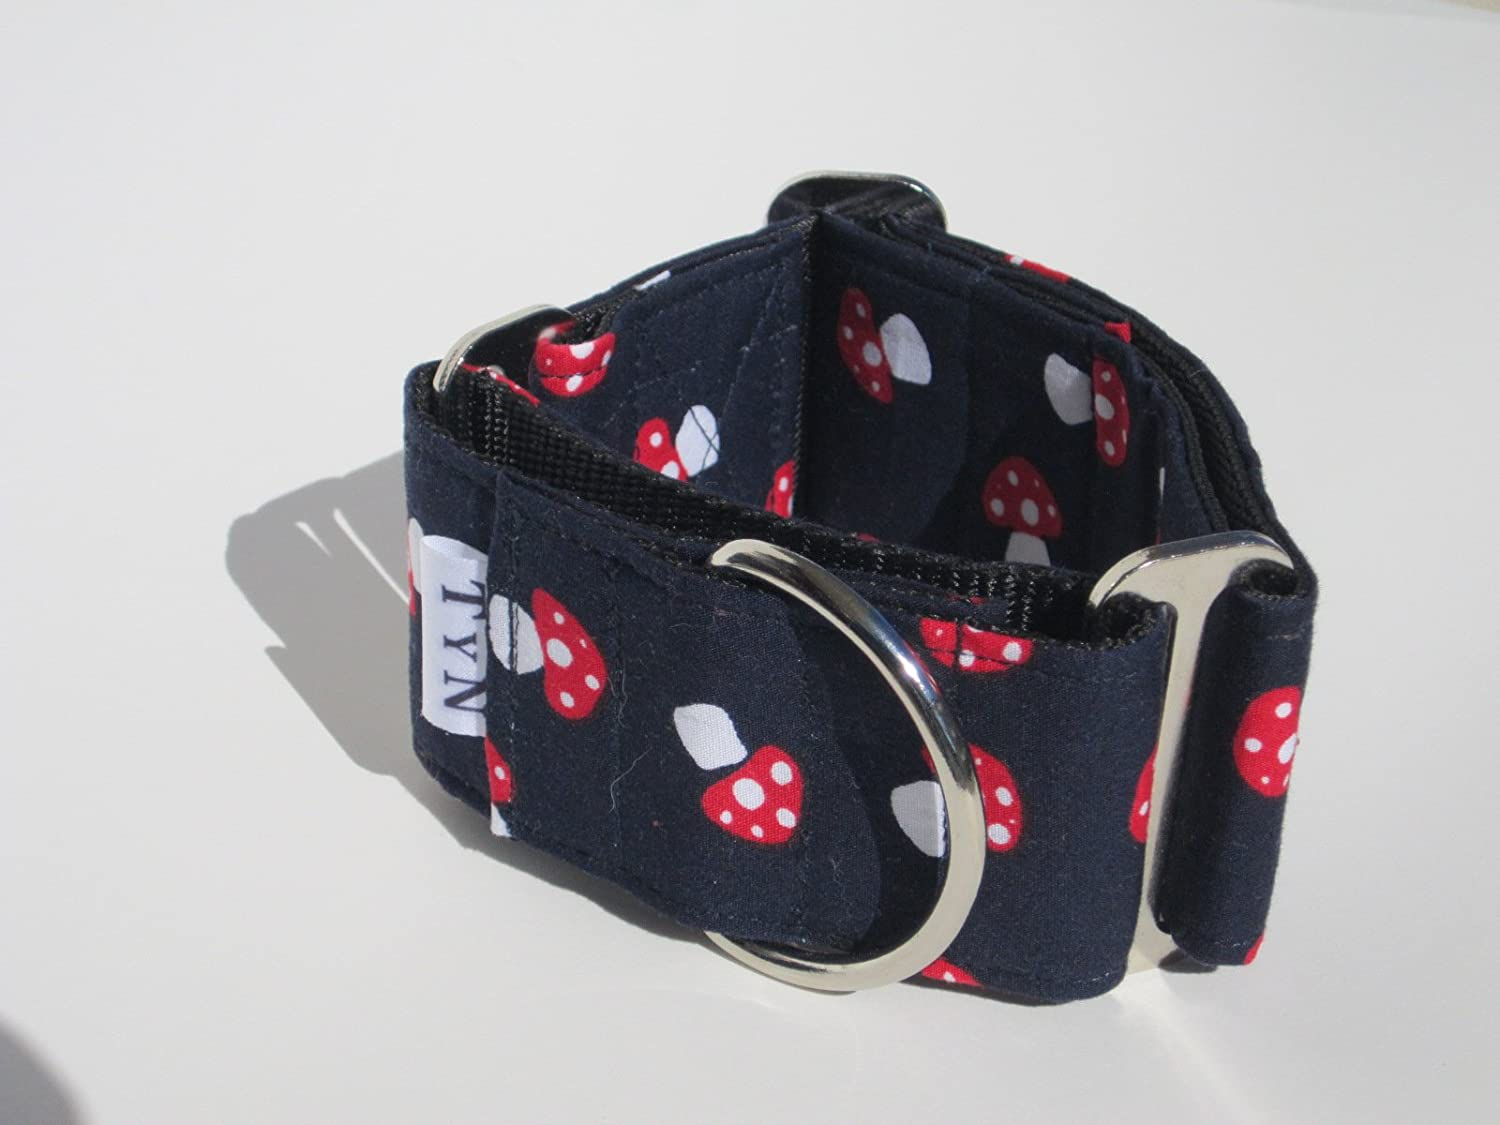 Collar Martingale Anti Escape para Galgo de 50 mm. de Ancho, Hecho ...